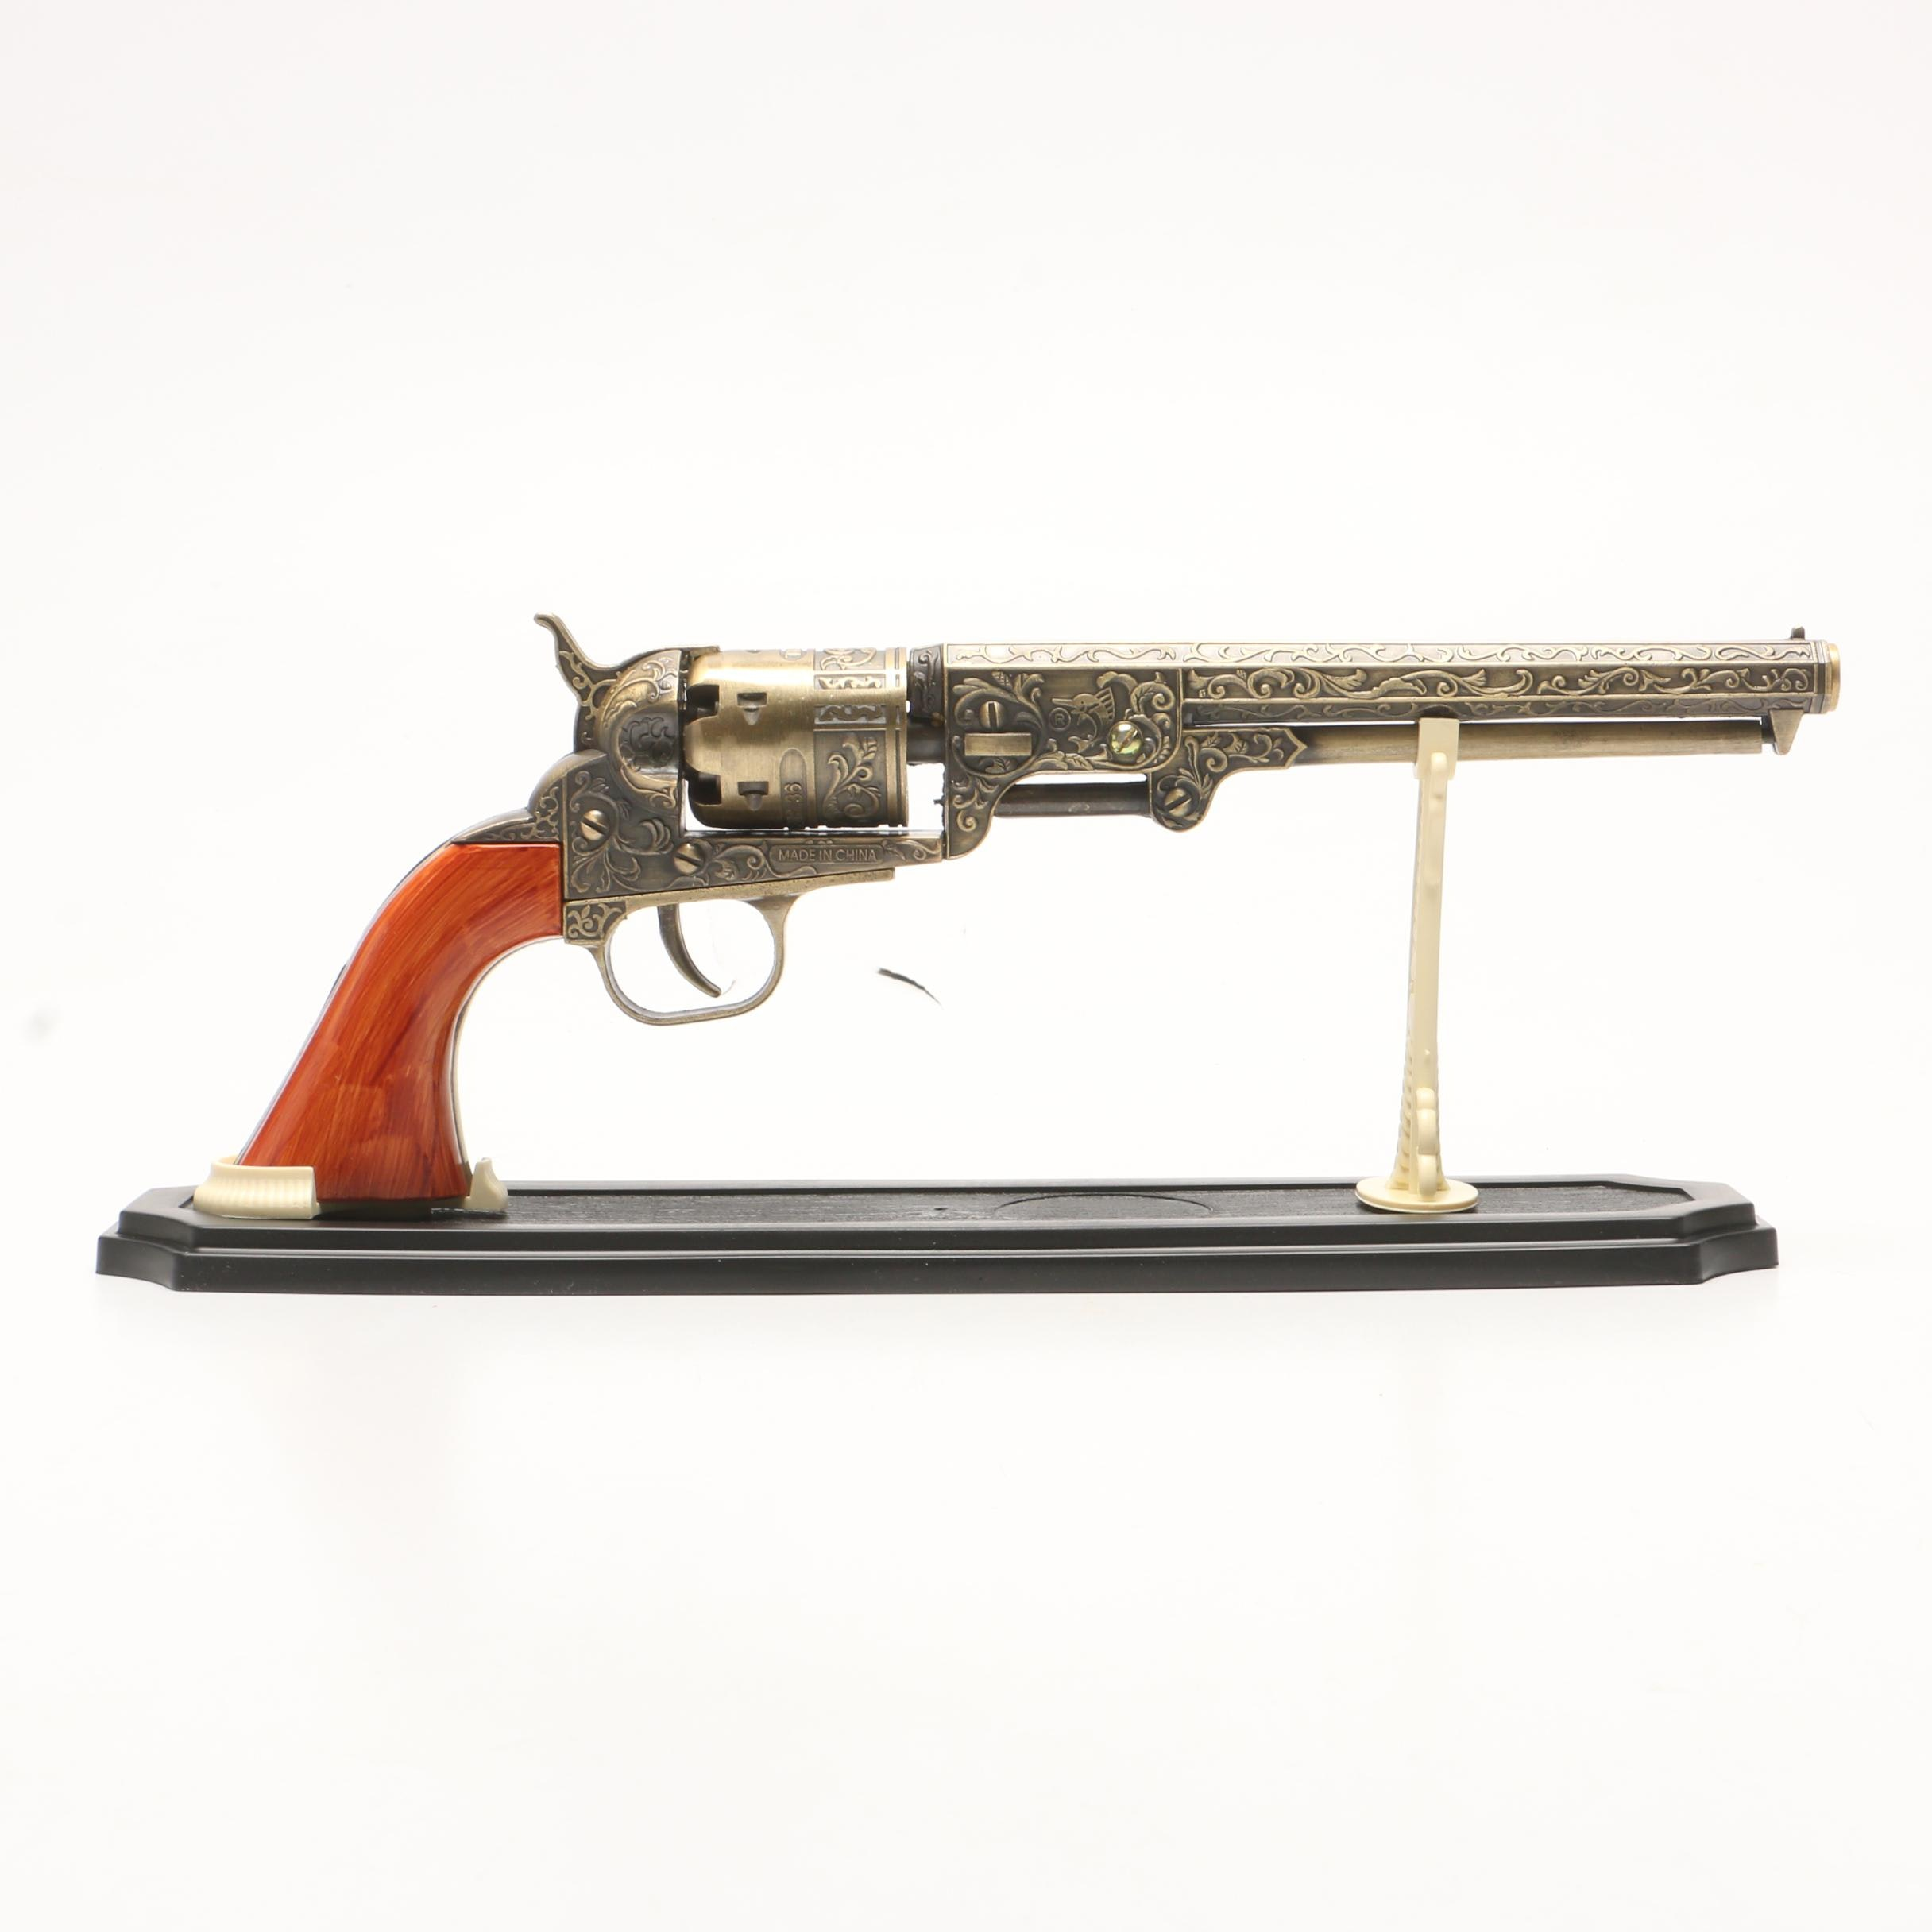 "Replica ""The U.S. 36"" Colt Revolver Pistol on Stand"